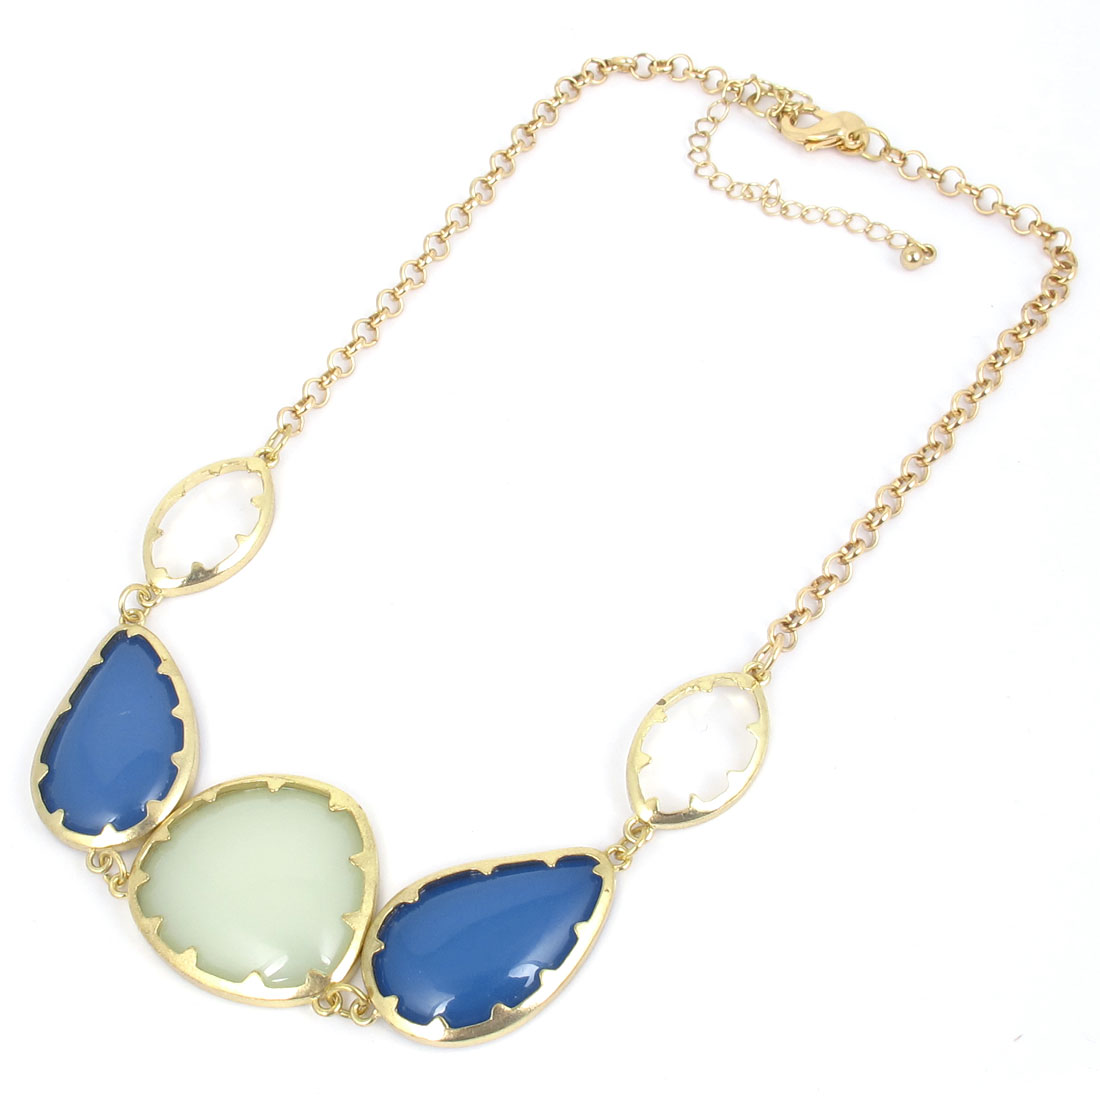 Ladies Blue Light Green Plastic Crystals Inlaid Waterdrop Shape Decor Metal Lobster Buckle Necklace Neckwear Collar Gold Tone